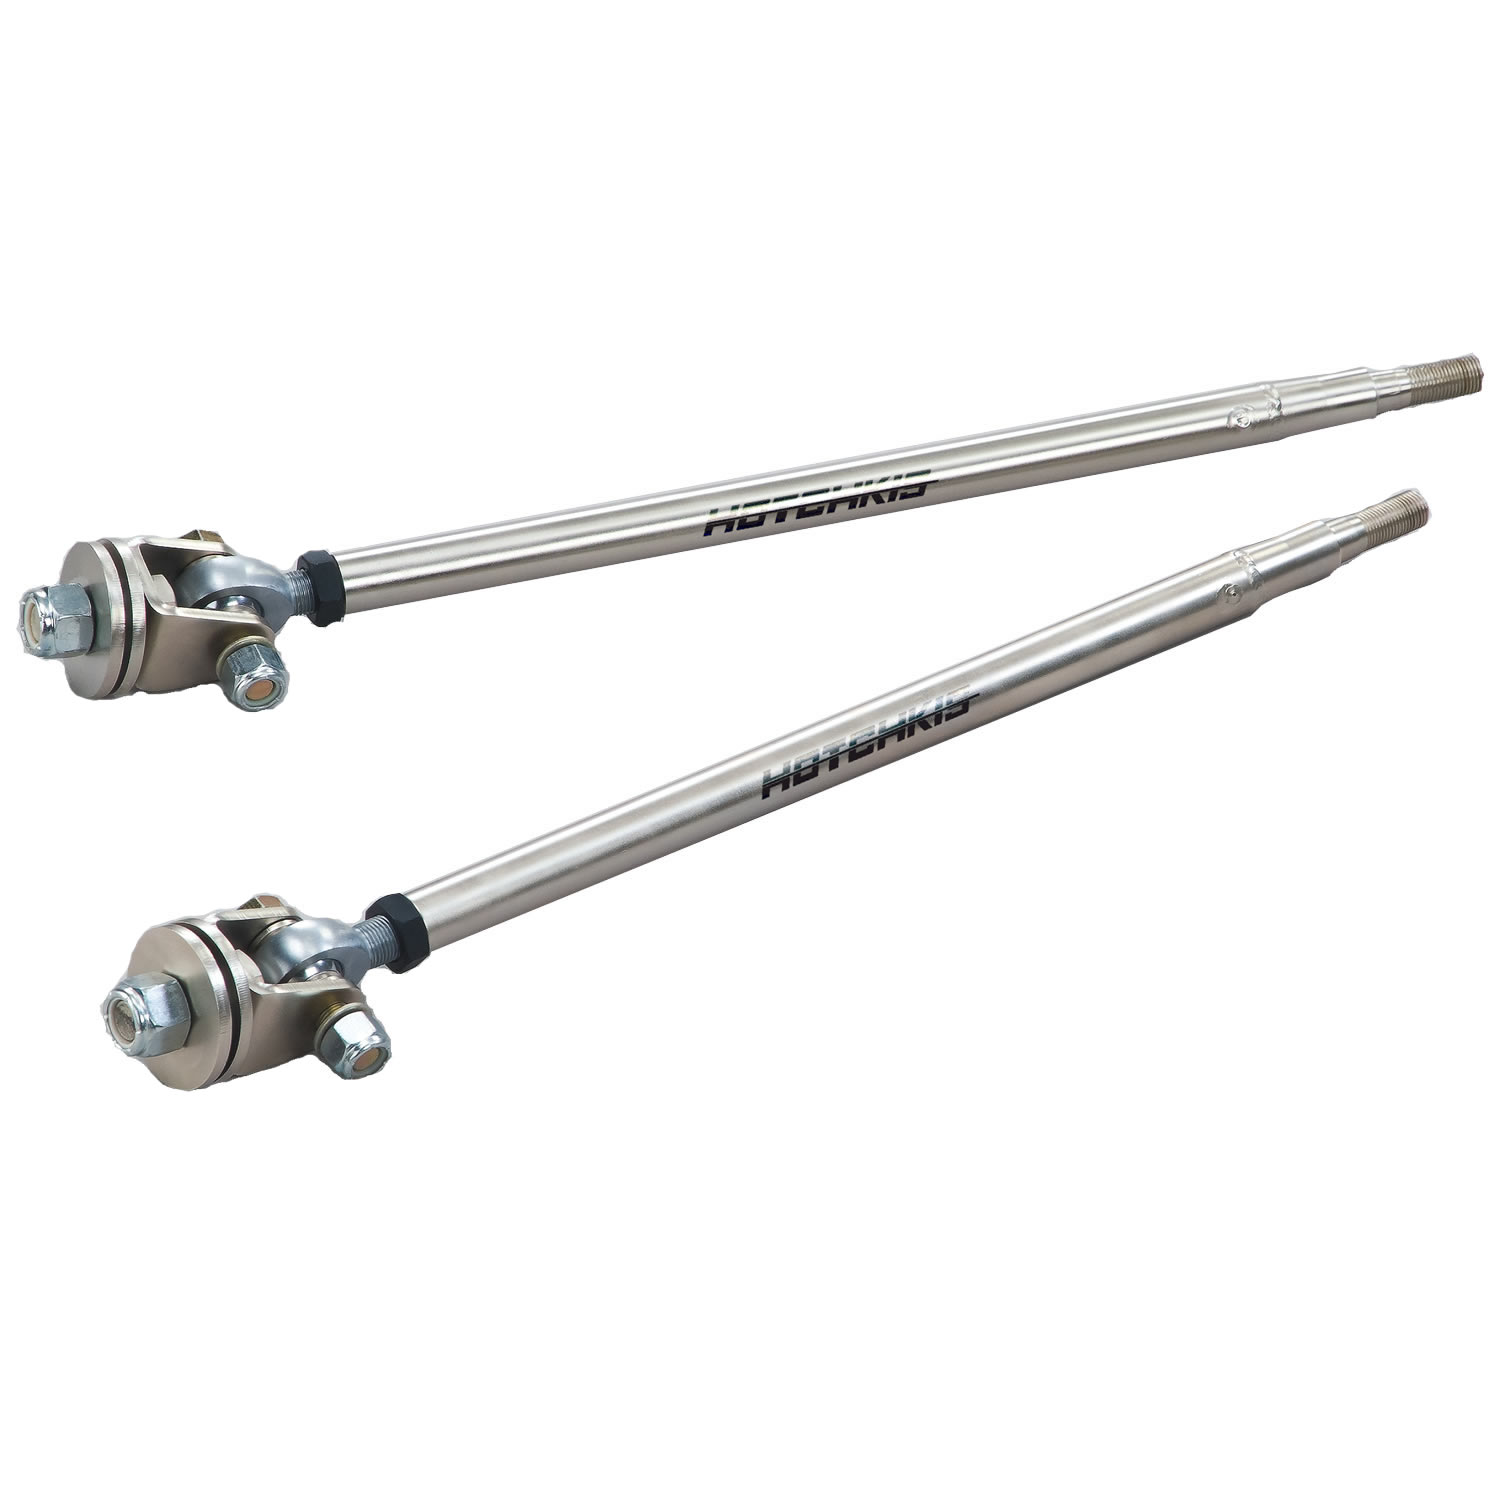 Hotchkis Performance Strut Rod Adjustable